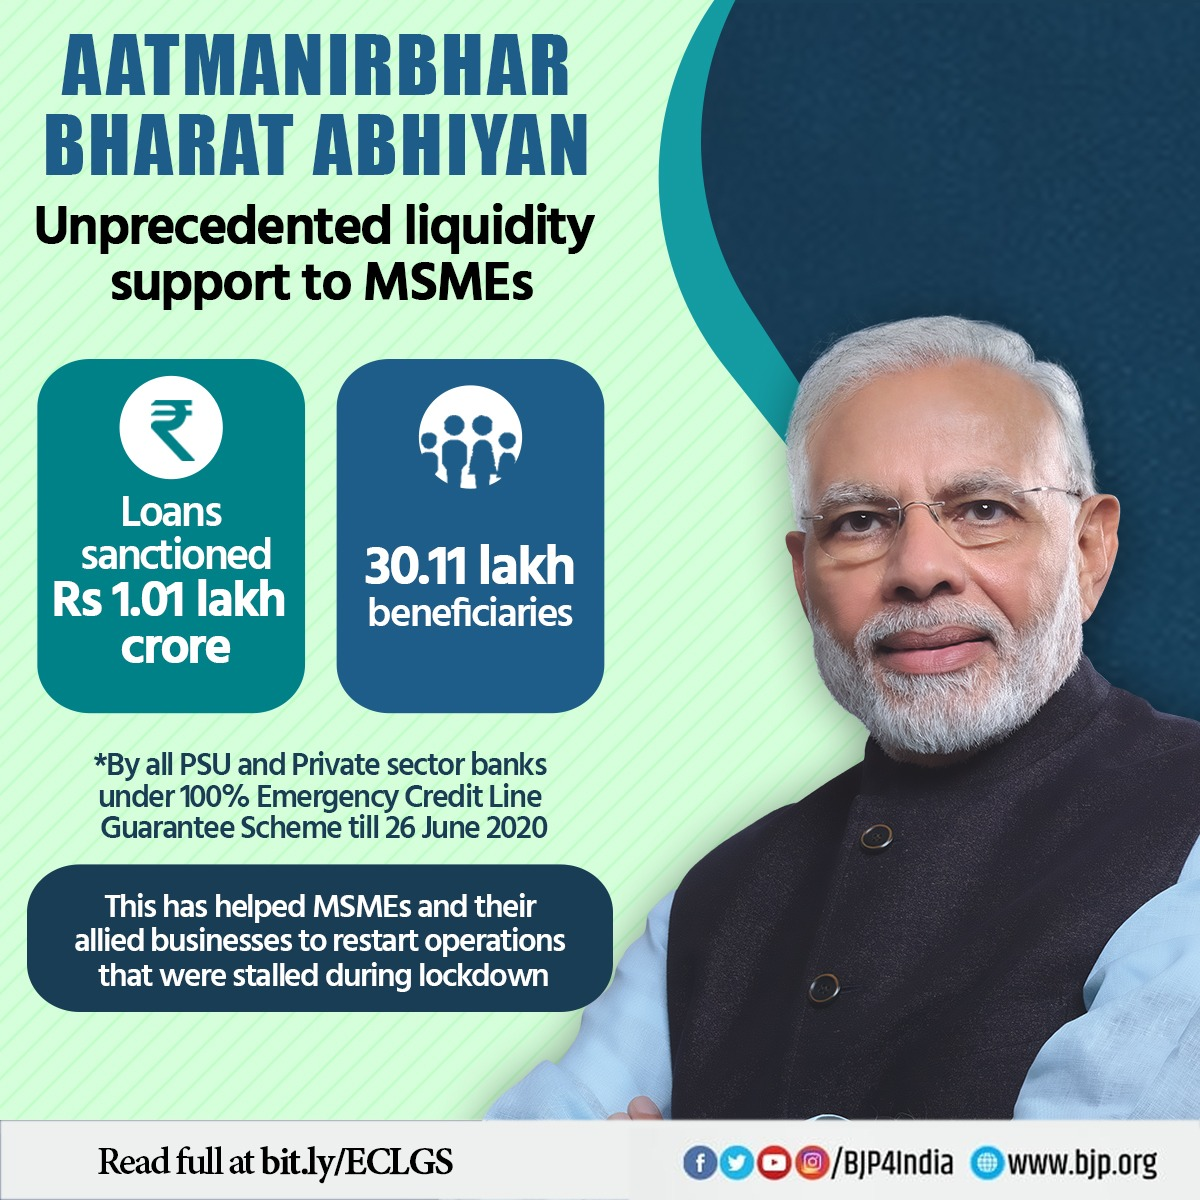 Loans worth Rs. 1.01 lakh crore have already been sanctioned to 30.11 lakh MSMEs under #AatmaNirbharBharatAbhiyan.  Such unprecedented liquidity support in the toughest of times during #Corona crisis has helped them restart their stalled operations, bringing economy to normalcy.<br>http://pic.twitter.com/d1vKwdzEM0